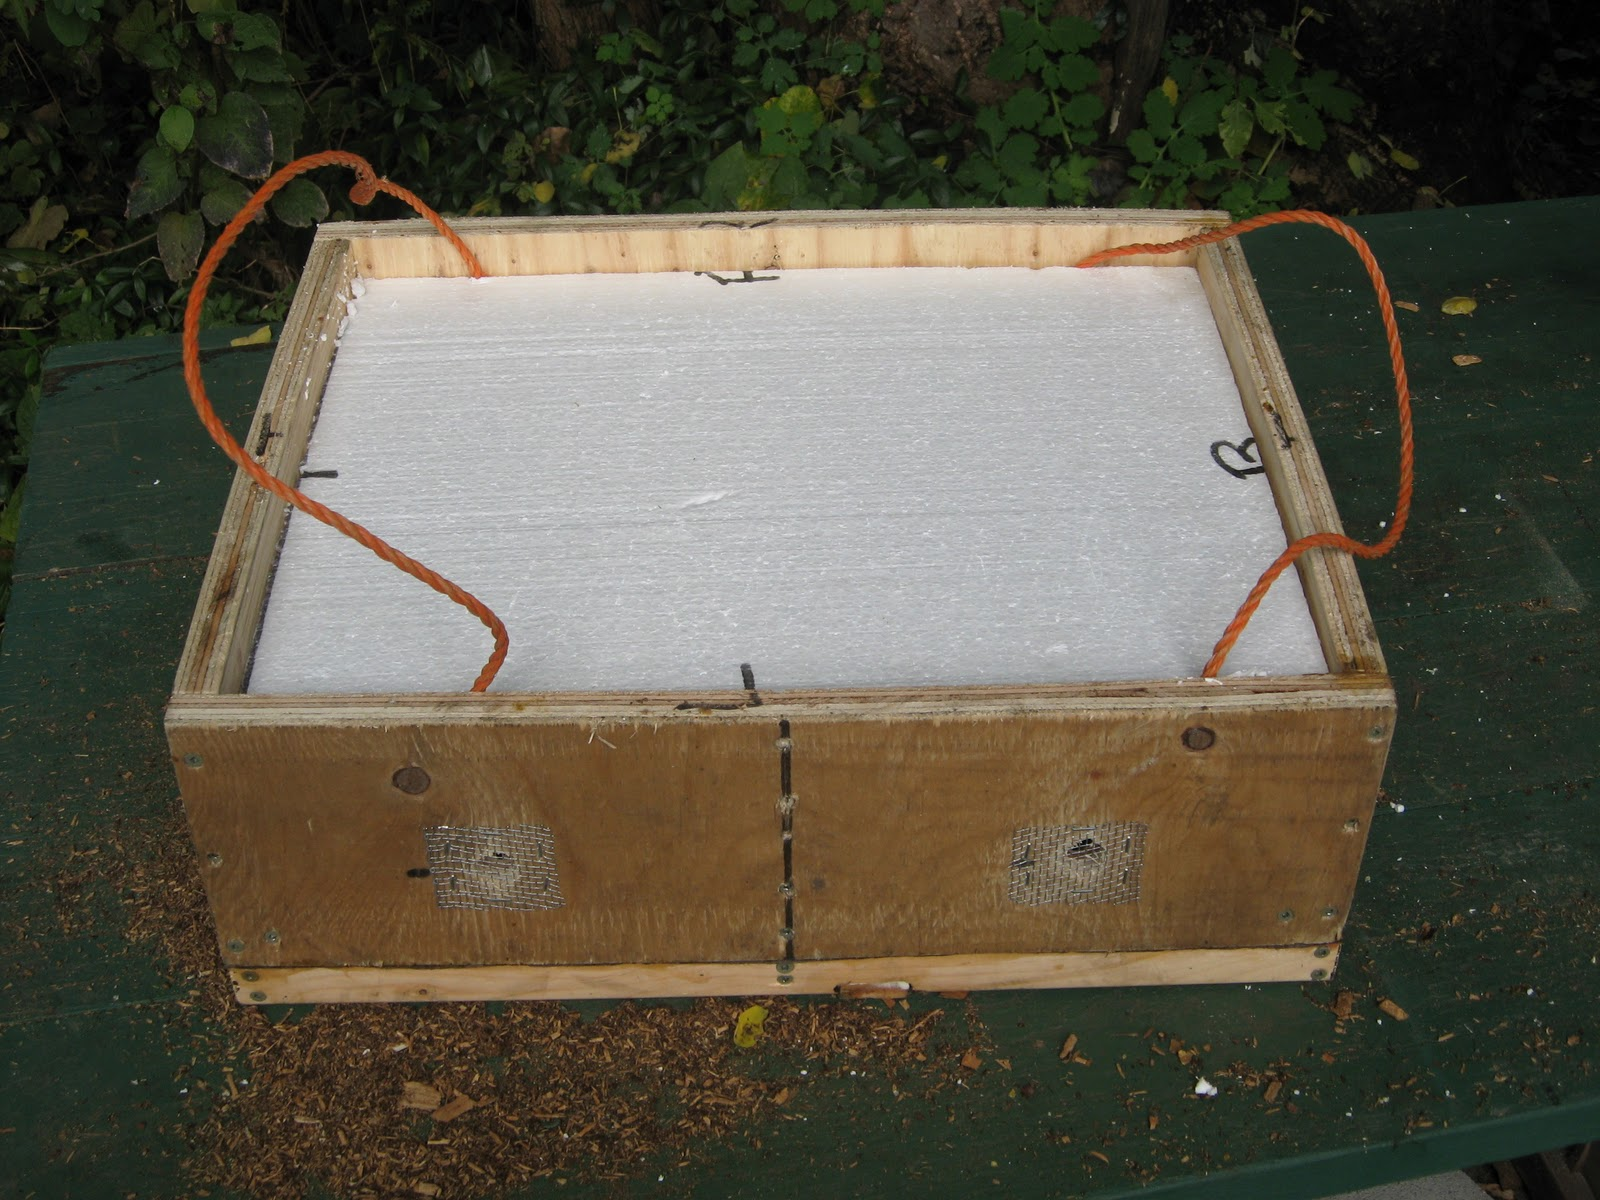 How to make a moisture quilt for a langstroth hive honey - Winter Hive Set Up With 2 Inch Feeder And Insulated Moisture Quilt